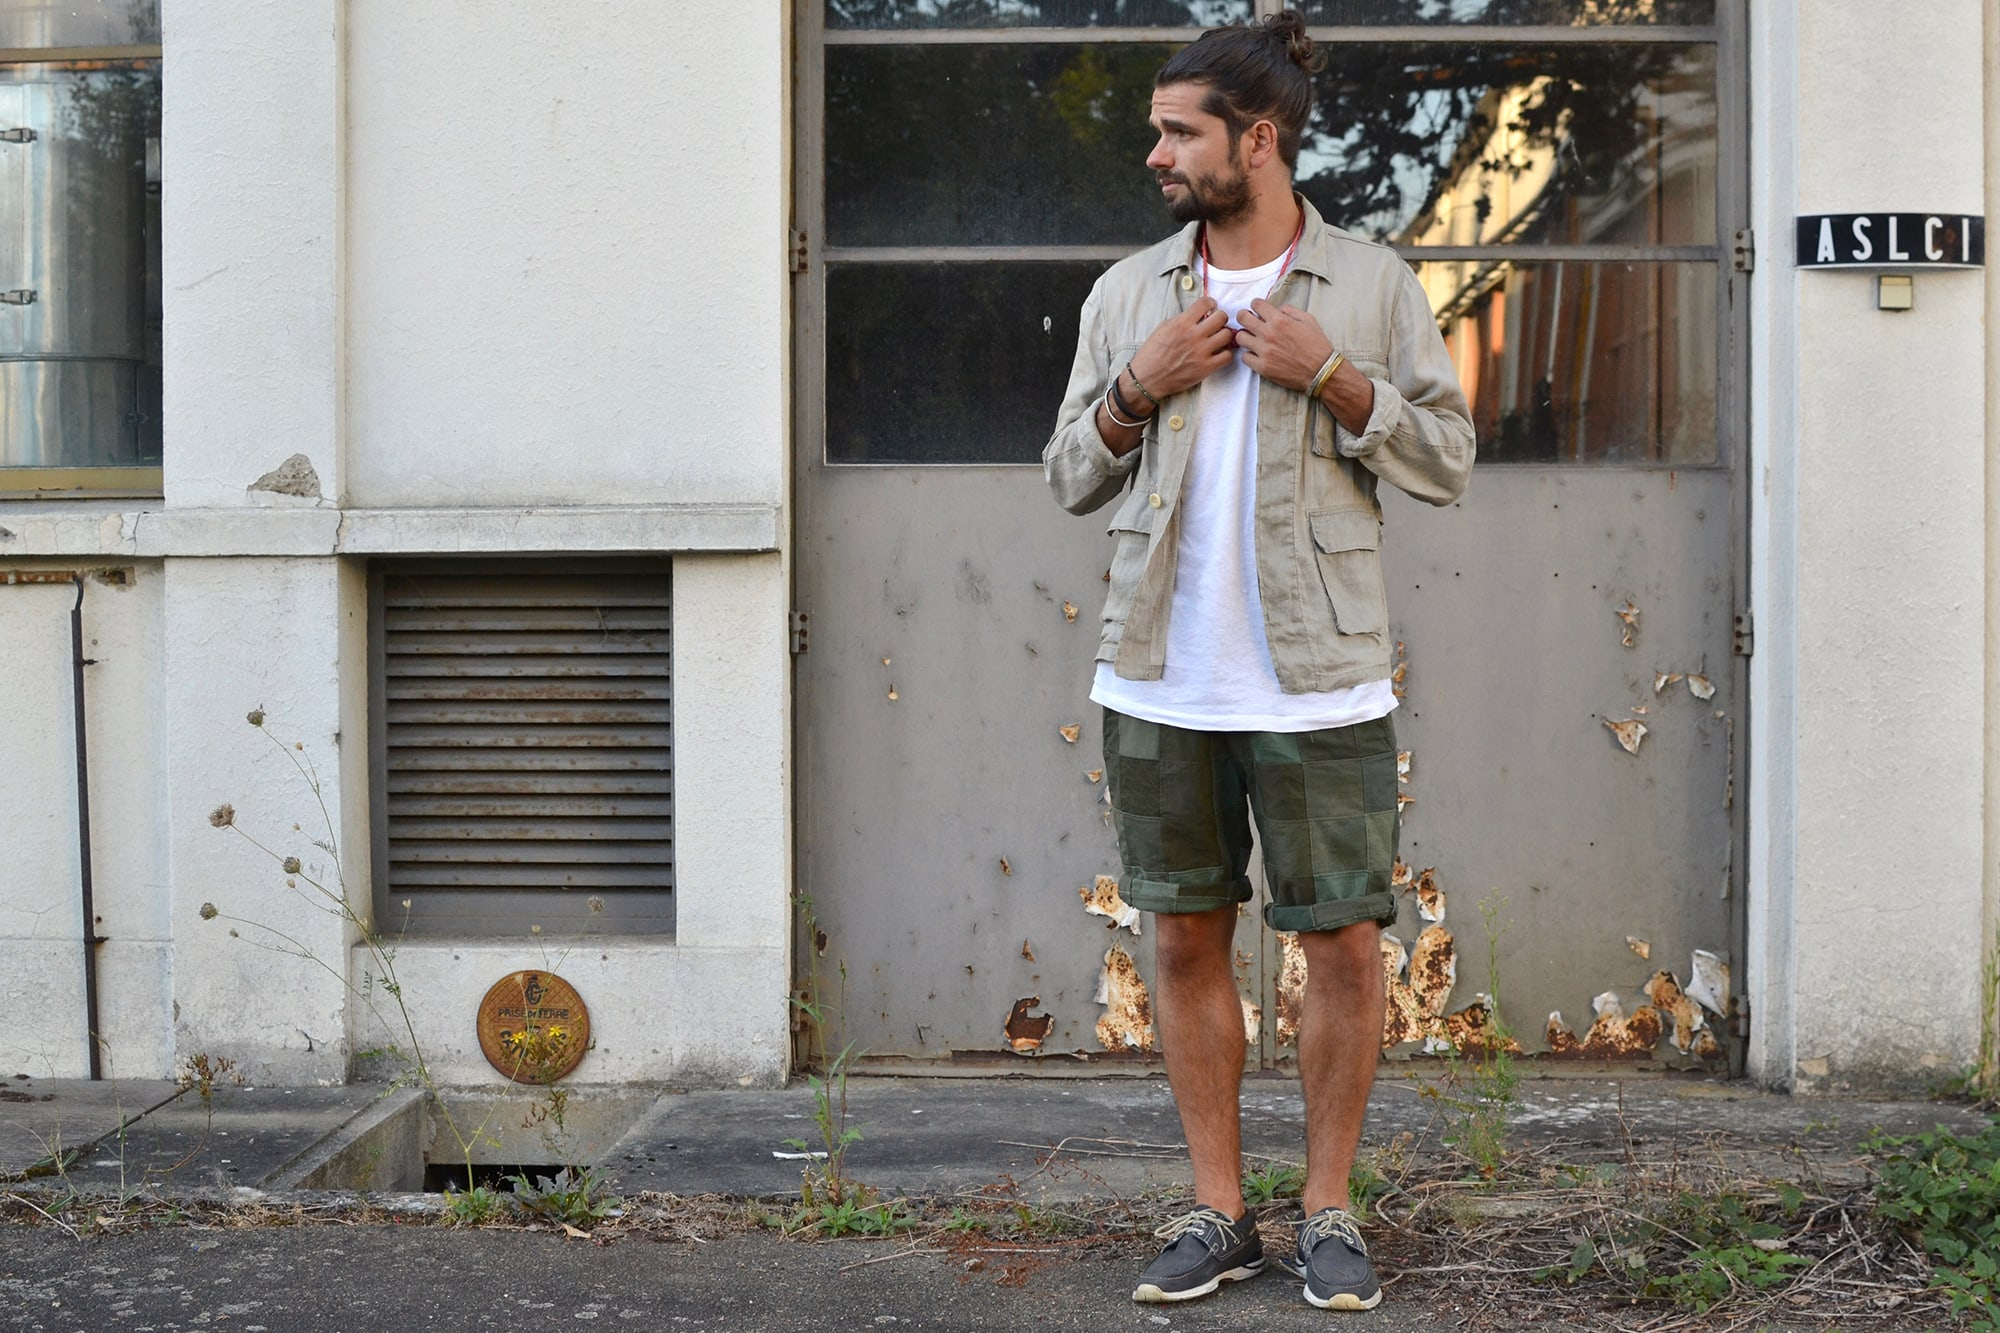 Visvim kilgore linen jacket and hockney shoes - Jinji bandana necklace - tap tee- Overlord Brand olive patchwork short - Converse CT70 all star sneakers (20)